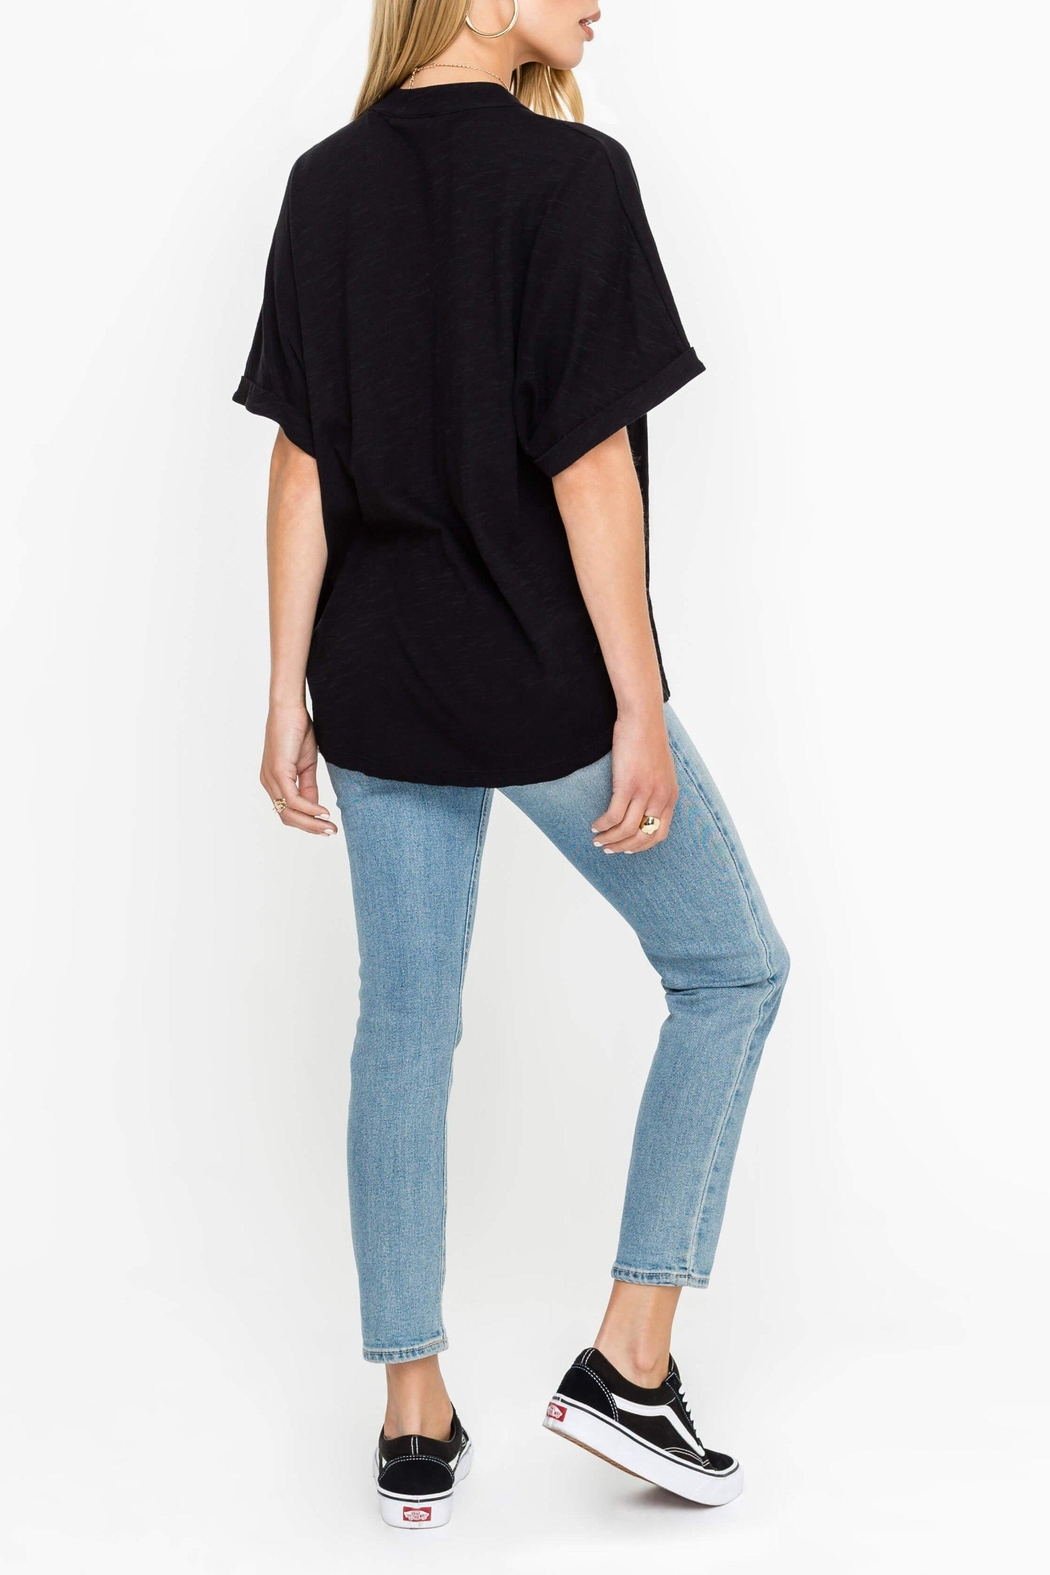 Lush Cici Knit Top - Front Full Image